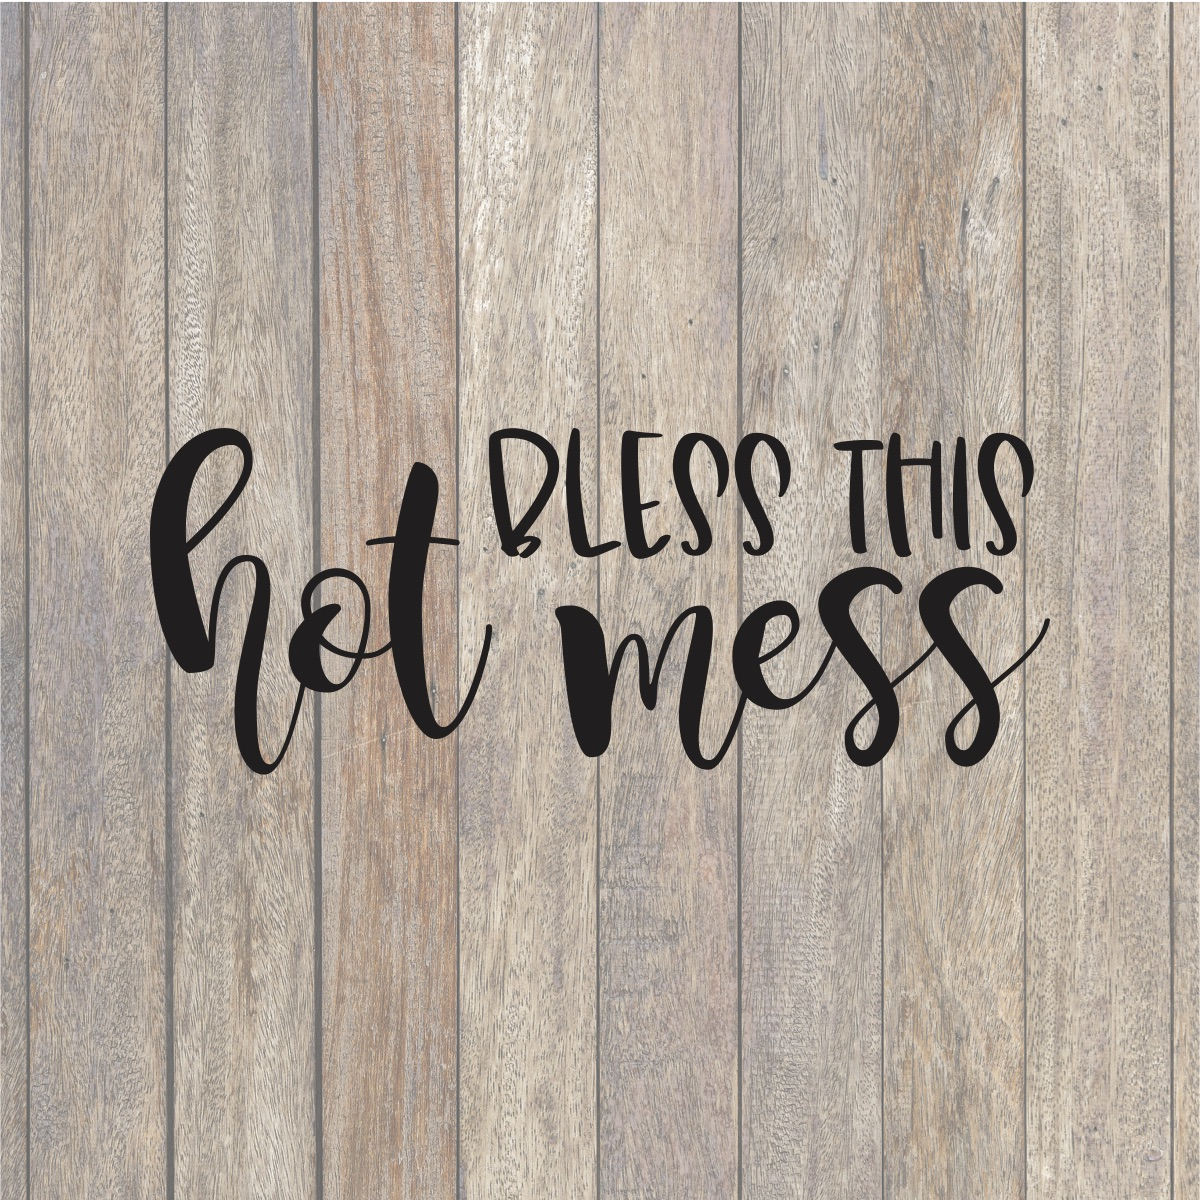 Bless This Hot Mess Svg File Hand Lettered Cut Files